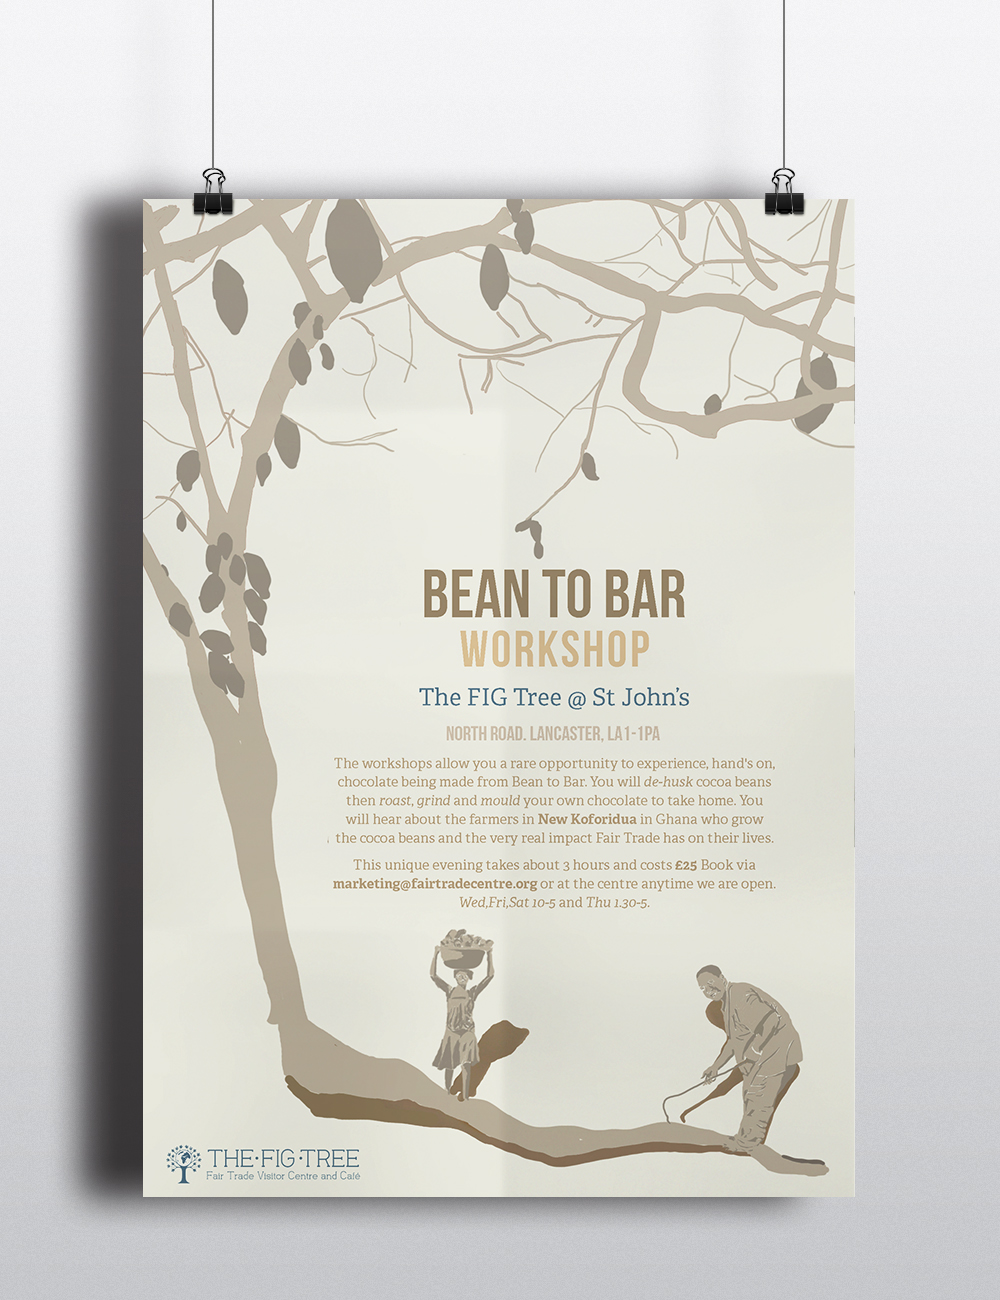 Bean to Bar workshop poster